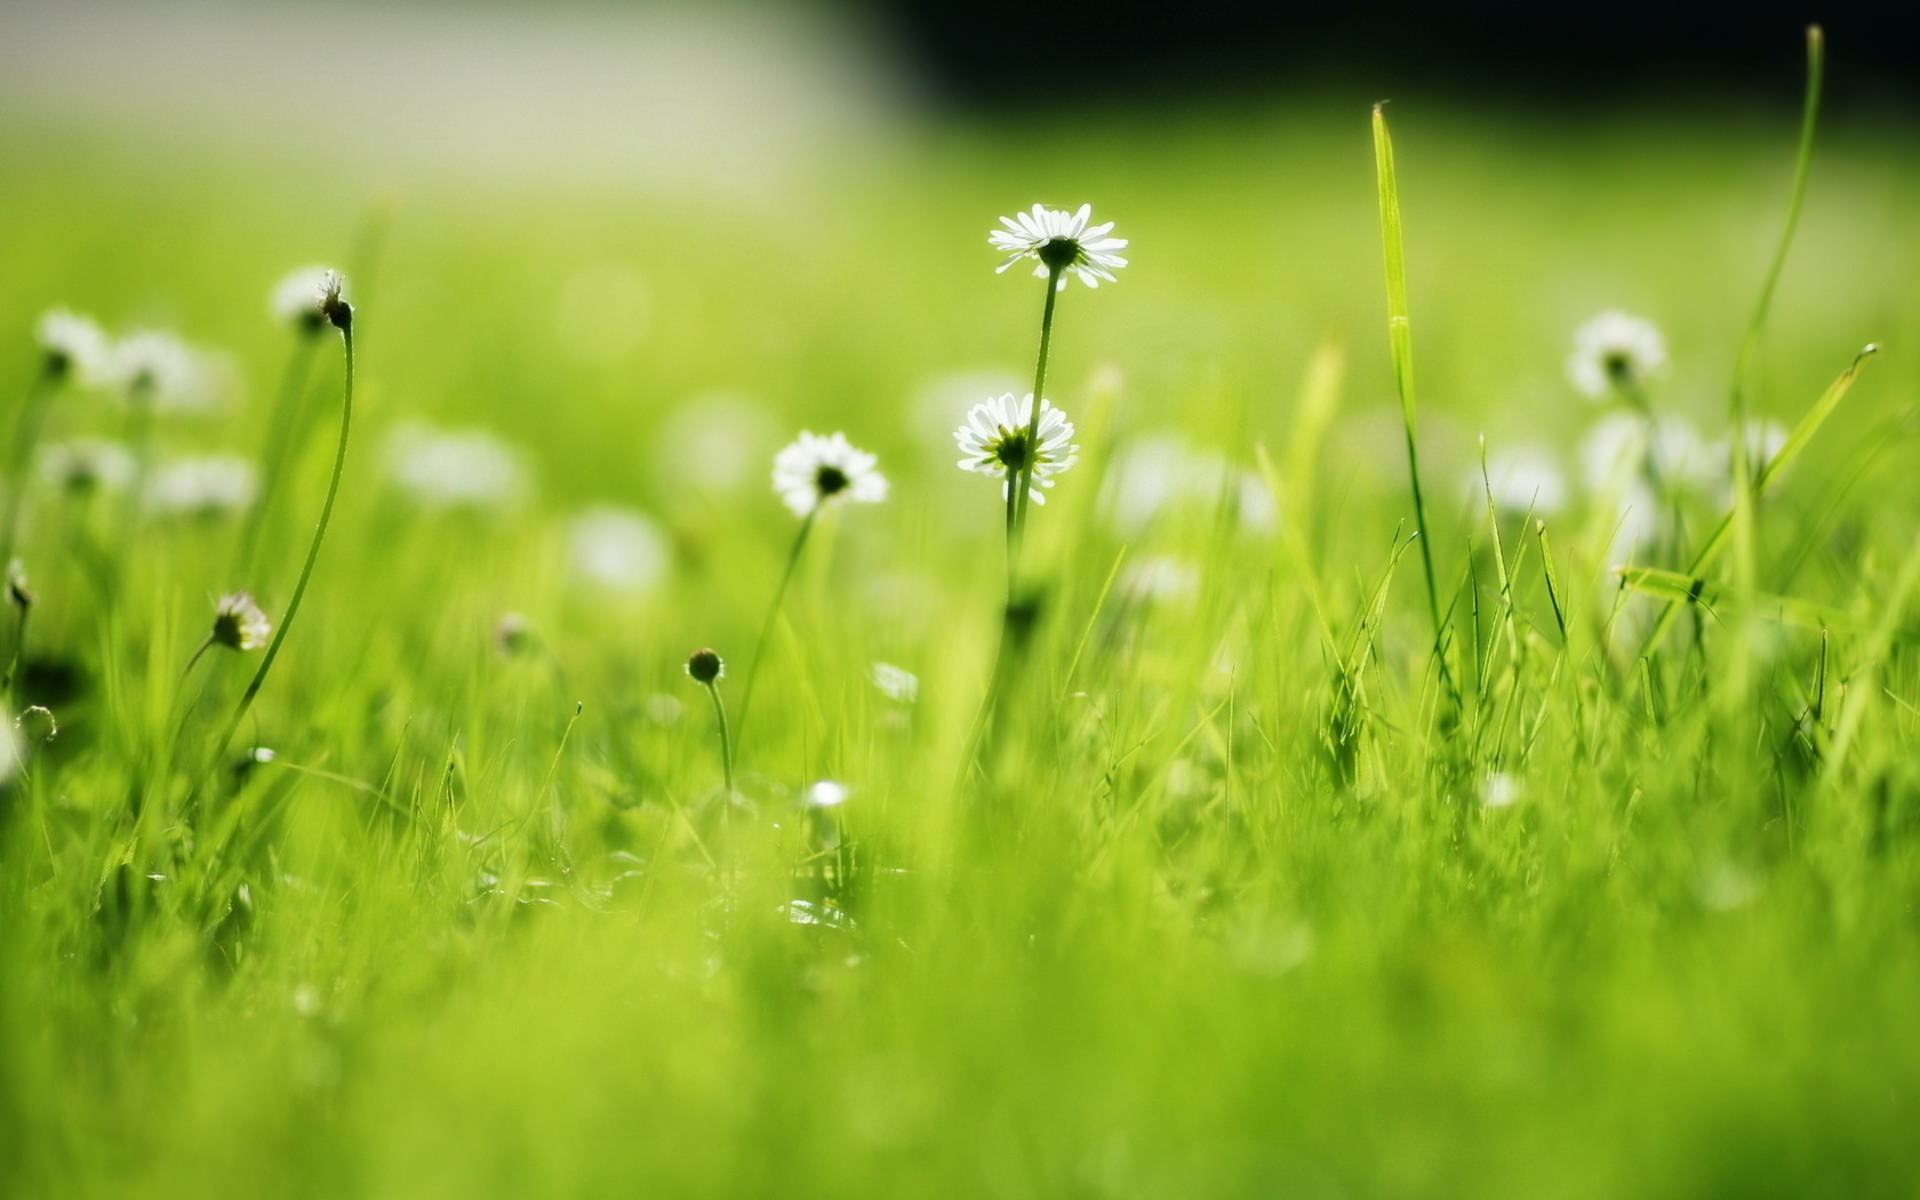 Green Grass with Daisy Nature Wallpaper